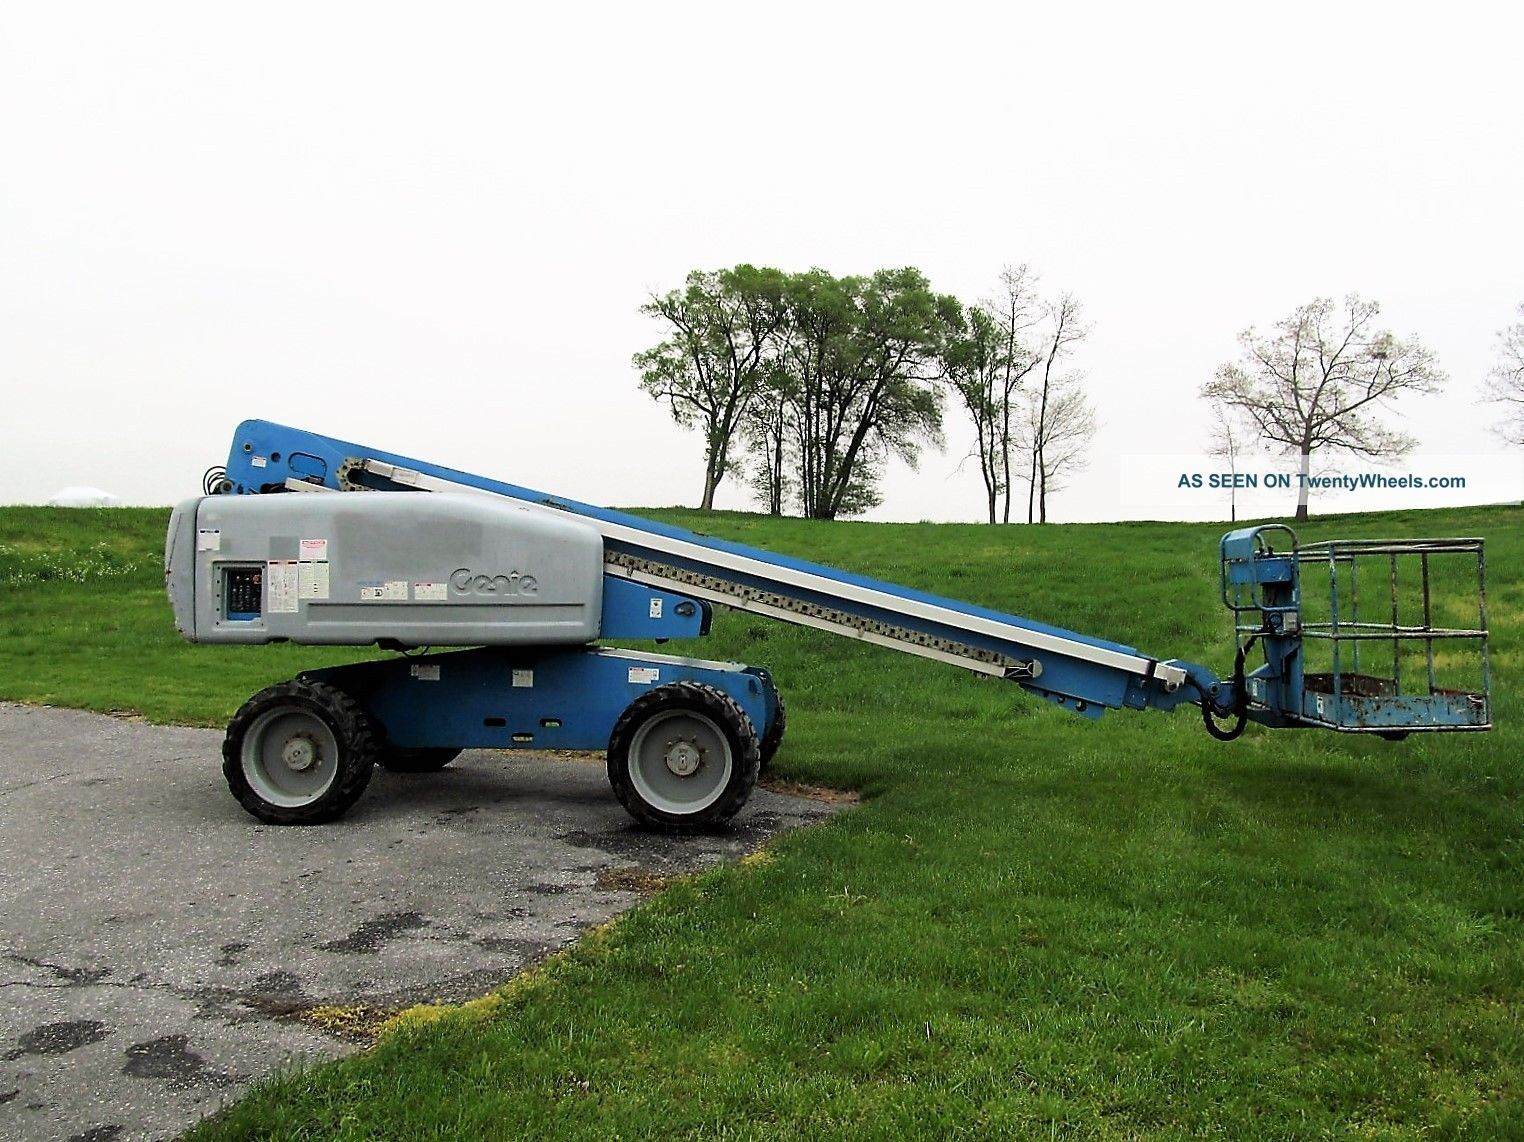 2008 ' Genie S - 60 Boom Lift,  Diesel,  Manlift,  4x4 Drive,  Jlg 60 600s Aerial S60 Scissor & Boom Lifts photo